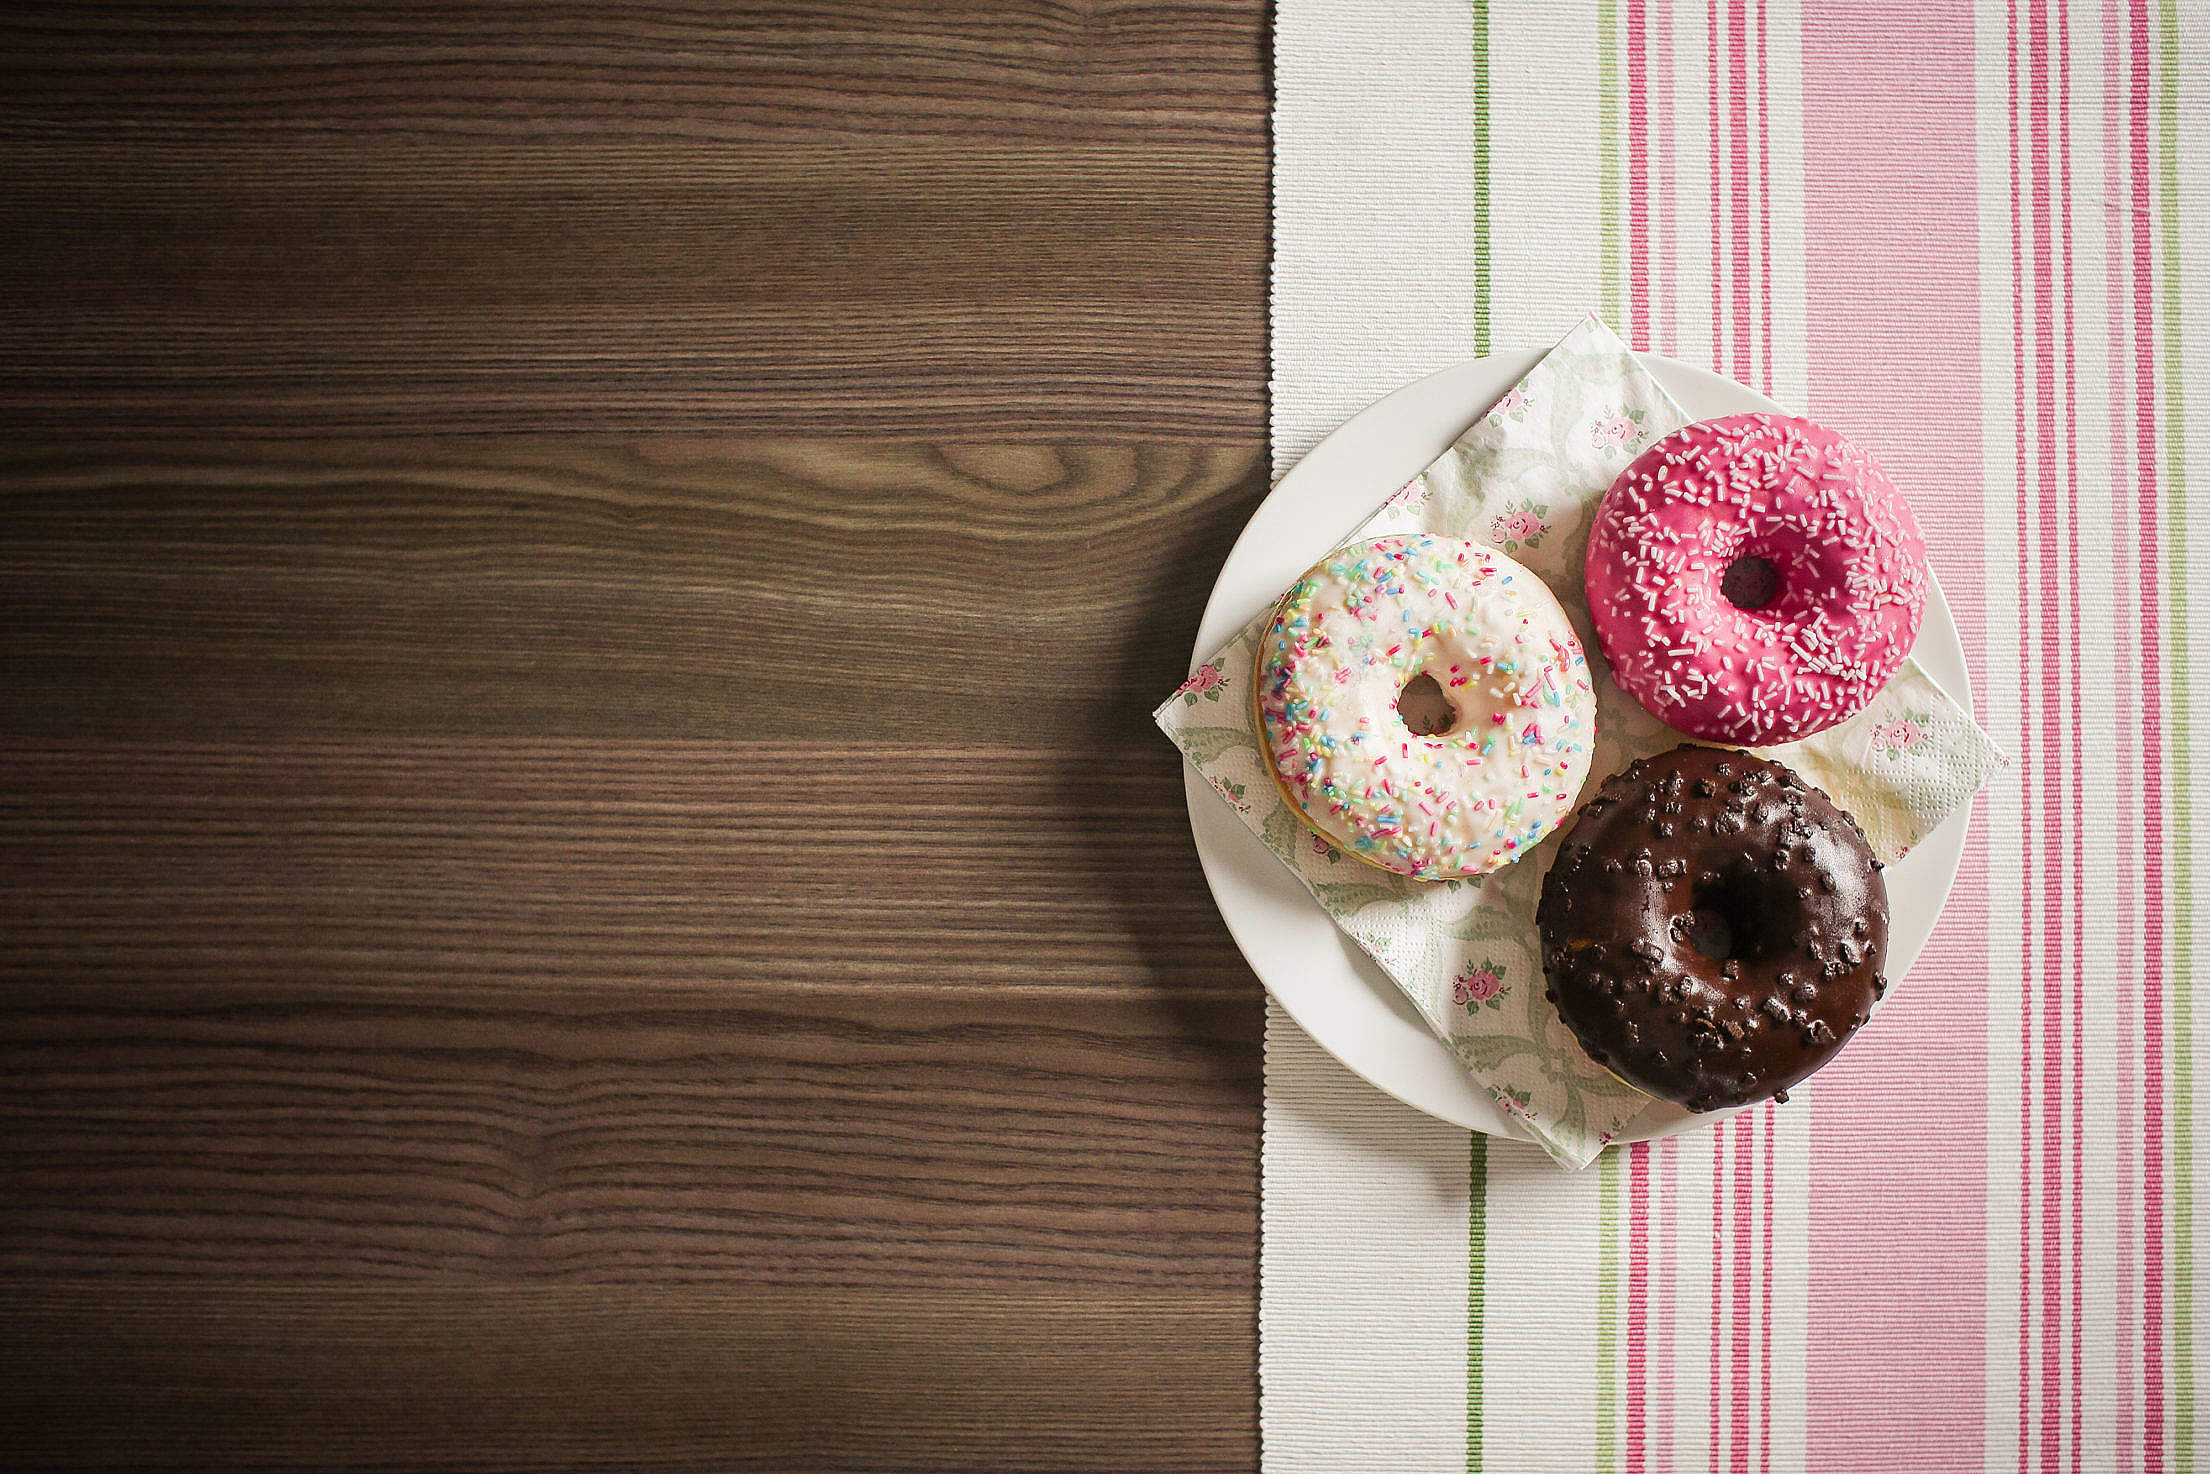 Three Yummy Donuts with Room for Text Free Stock Photo